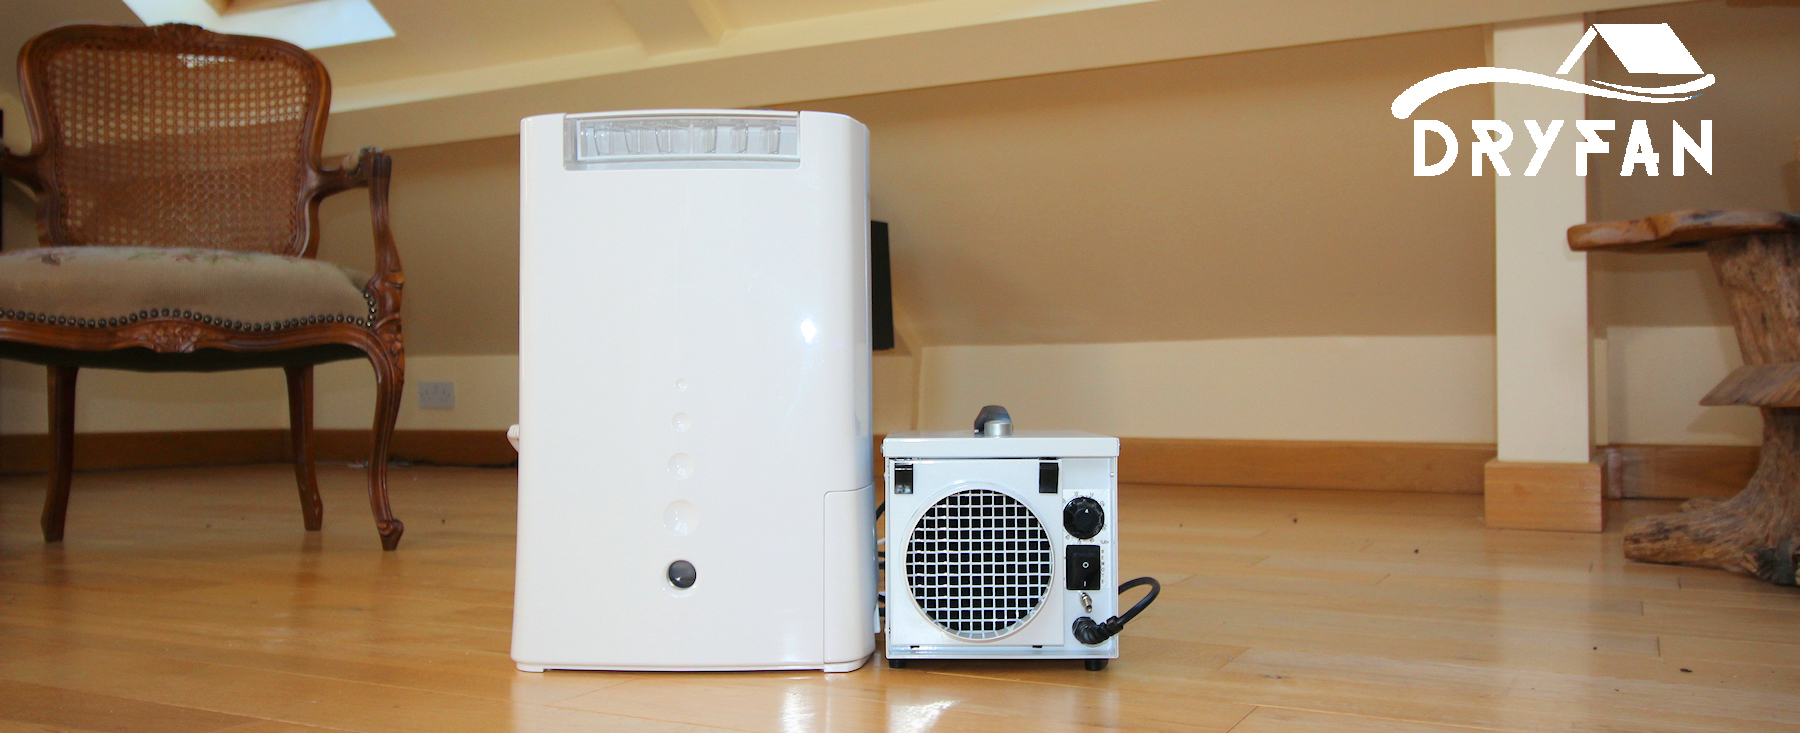 quiet dehumidifiers for basements size of a dryfan dehumidifiers by Ecor Pro